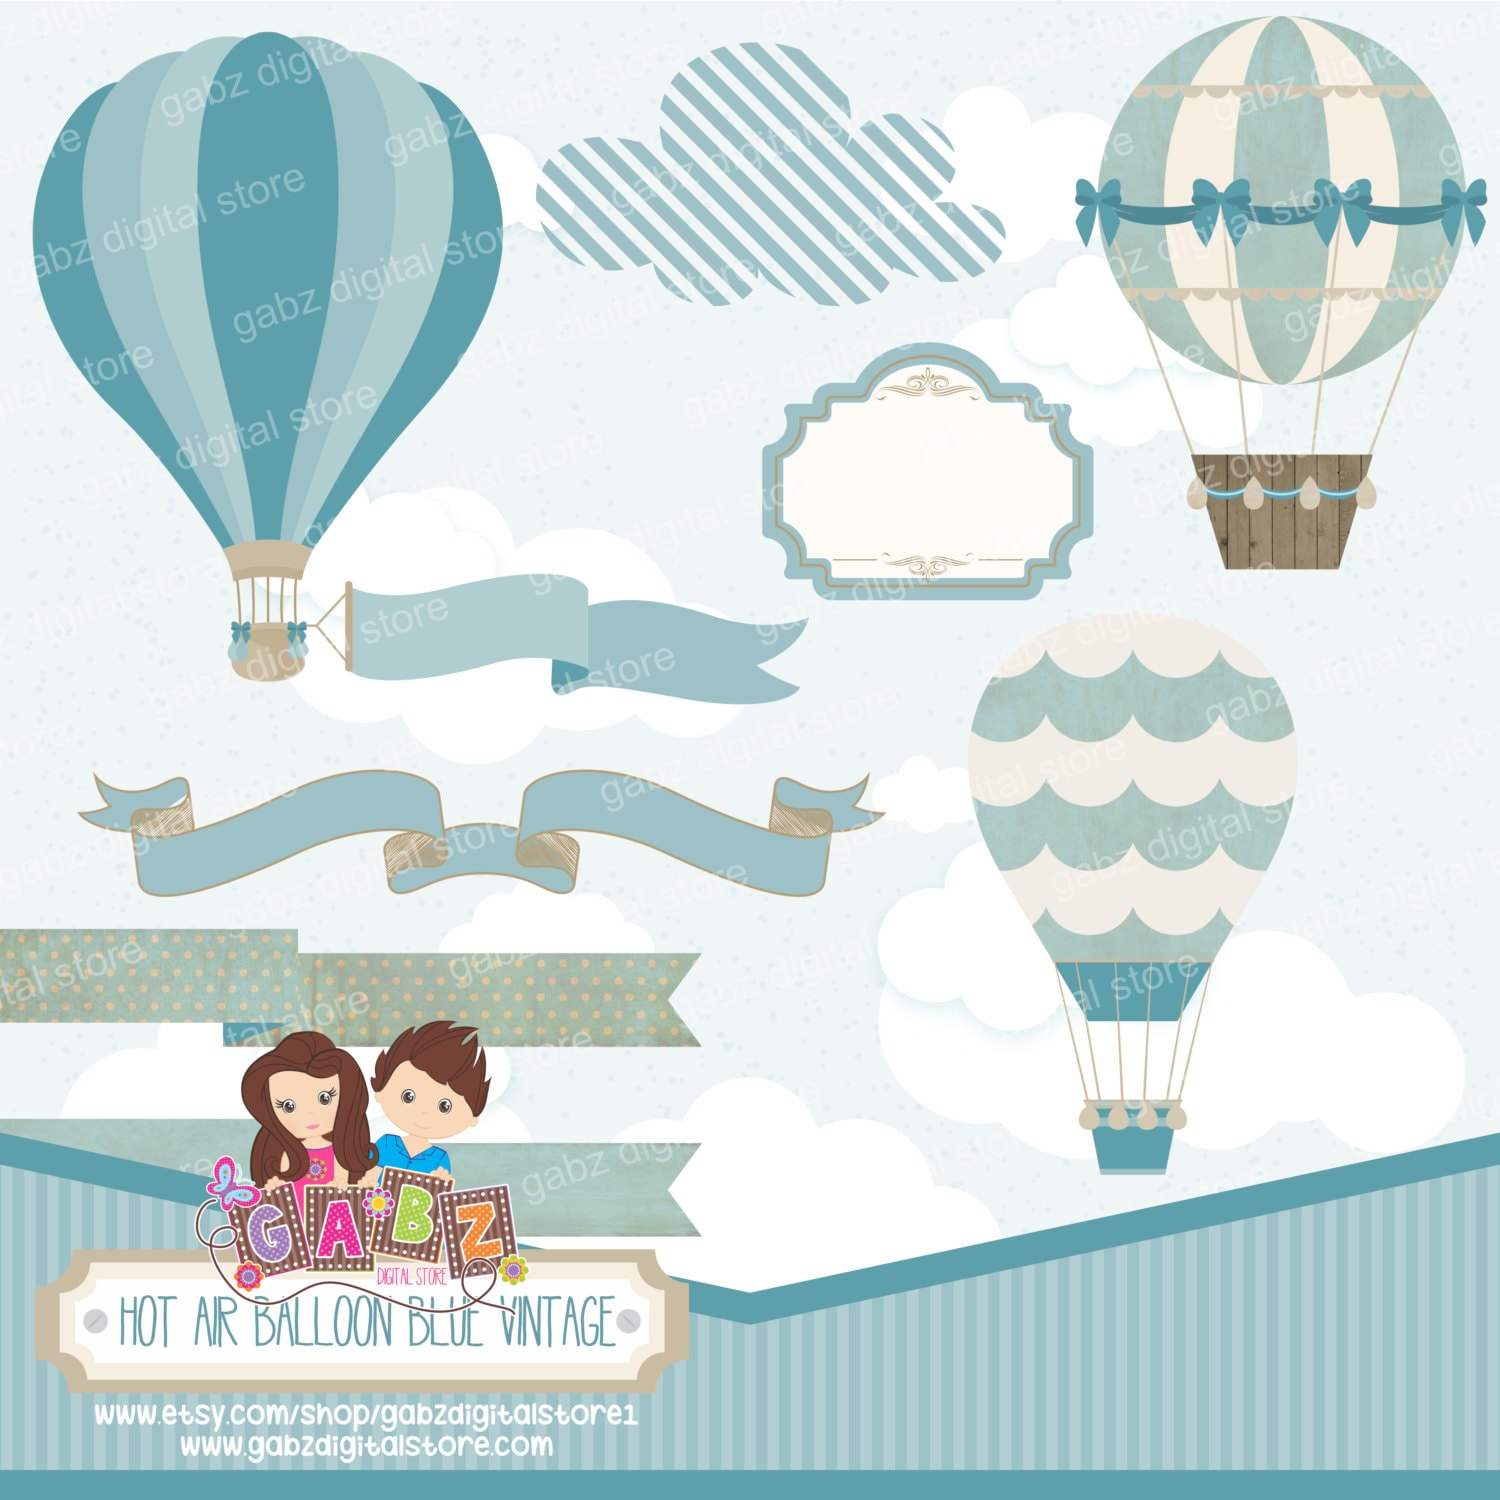 Hot Air Balloon Blue Vintage, Clipart, Digital Paper, Birthday Boy, Baby  Shower, Baptism, Frame, Banner, Balloons, Vintage, Gabz